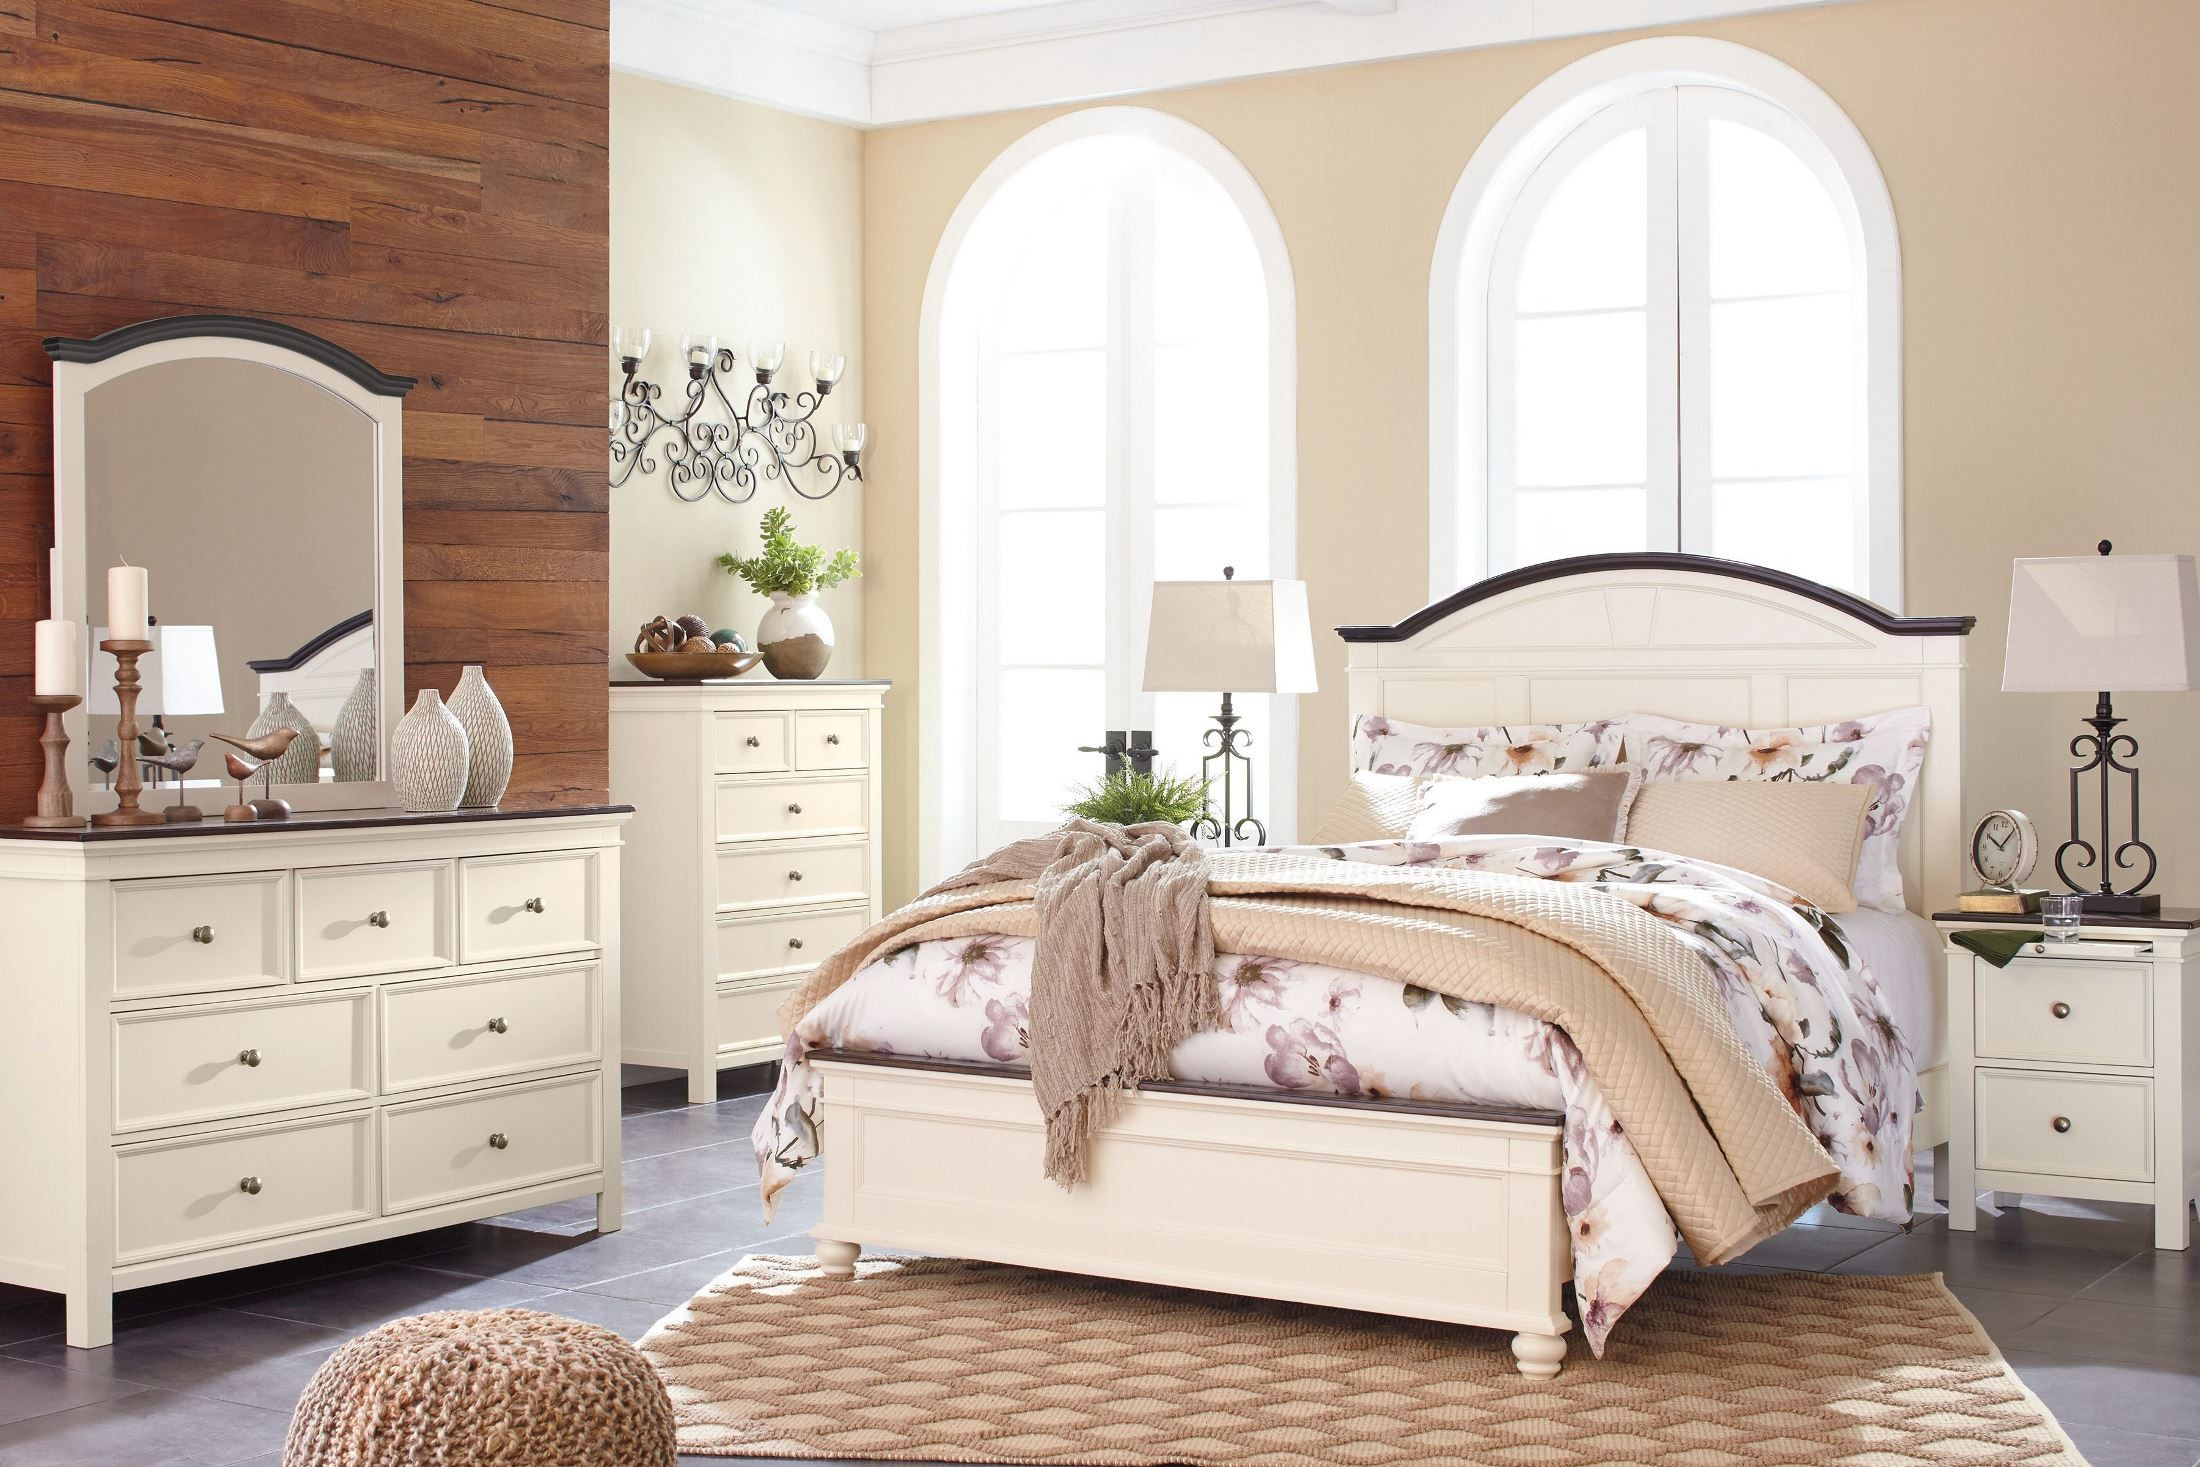 Woodanville White And Brown Panel Bedroom Set From Ashley Coleman Furniture